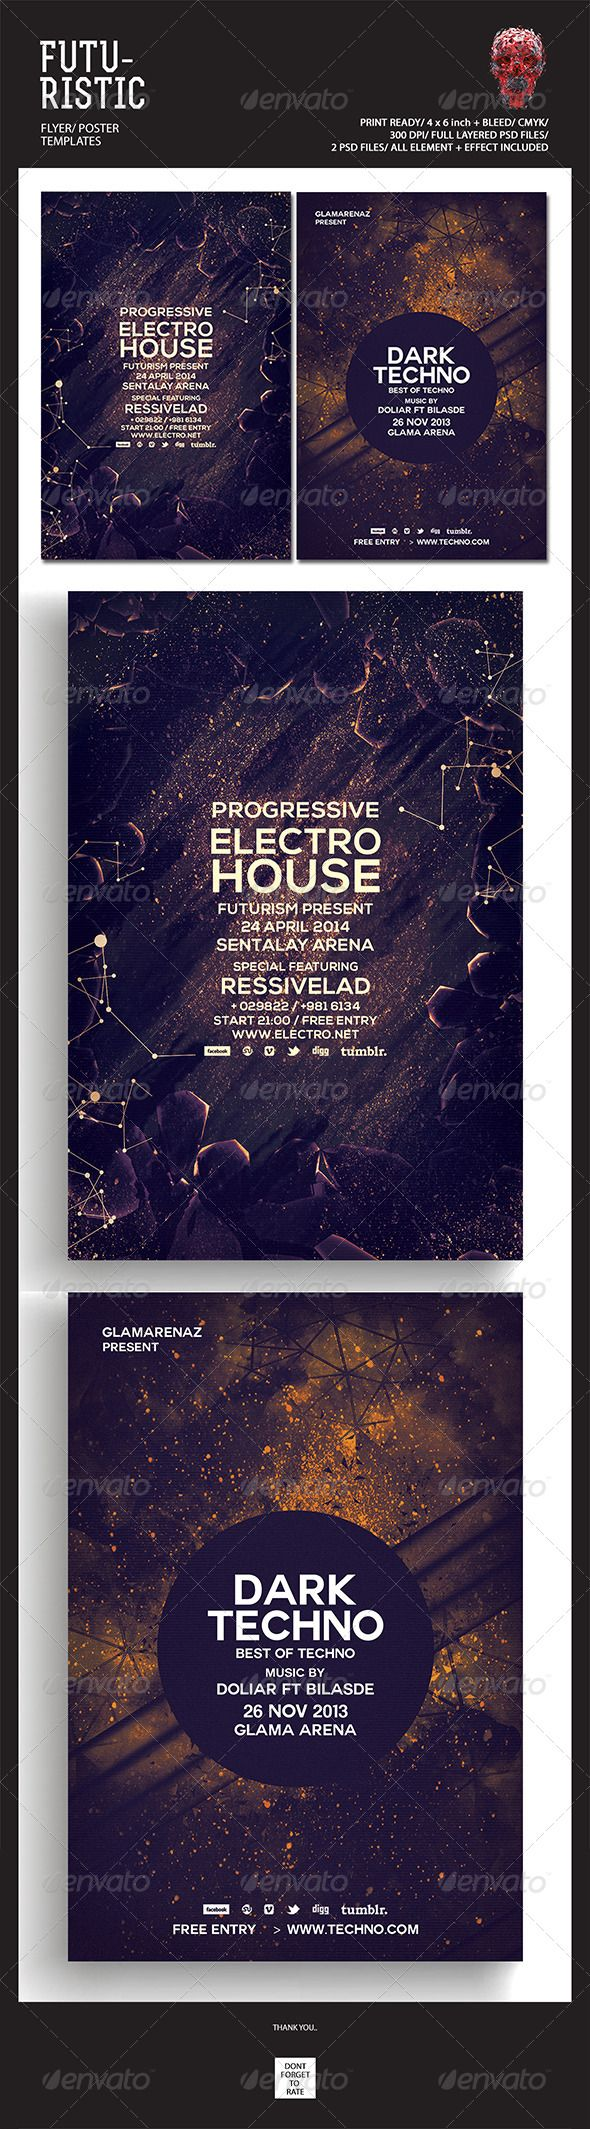 "Futuristic Flyer Templates #GraphicRiver Featured Flyers Flyer Artwork ""Dark Techno"" This flyer was designed to promote an Electro / Dubstep / Dance / Drum and Bass / Techno / House music event, such as a gig, concert, festival, dj set, party or weekly event in a music club and other kind of special evenings. This flyer can also be used for a new album promotion or other advertising purposes. Detail : 2 Psd files 4×6 with 0.25 inch bleed area 300 dpi/CMYK Organized layers Print ready Font…"